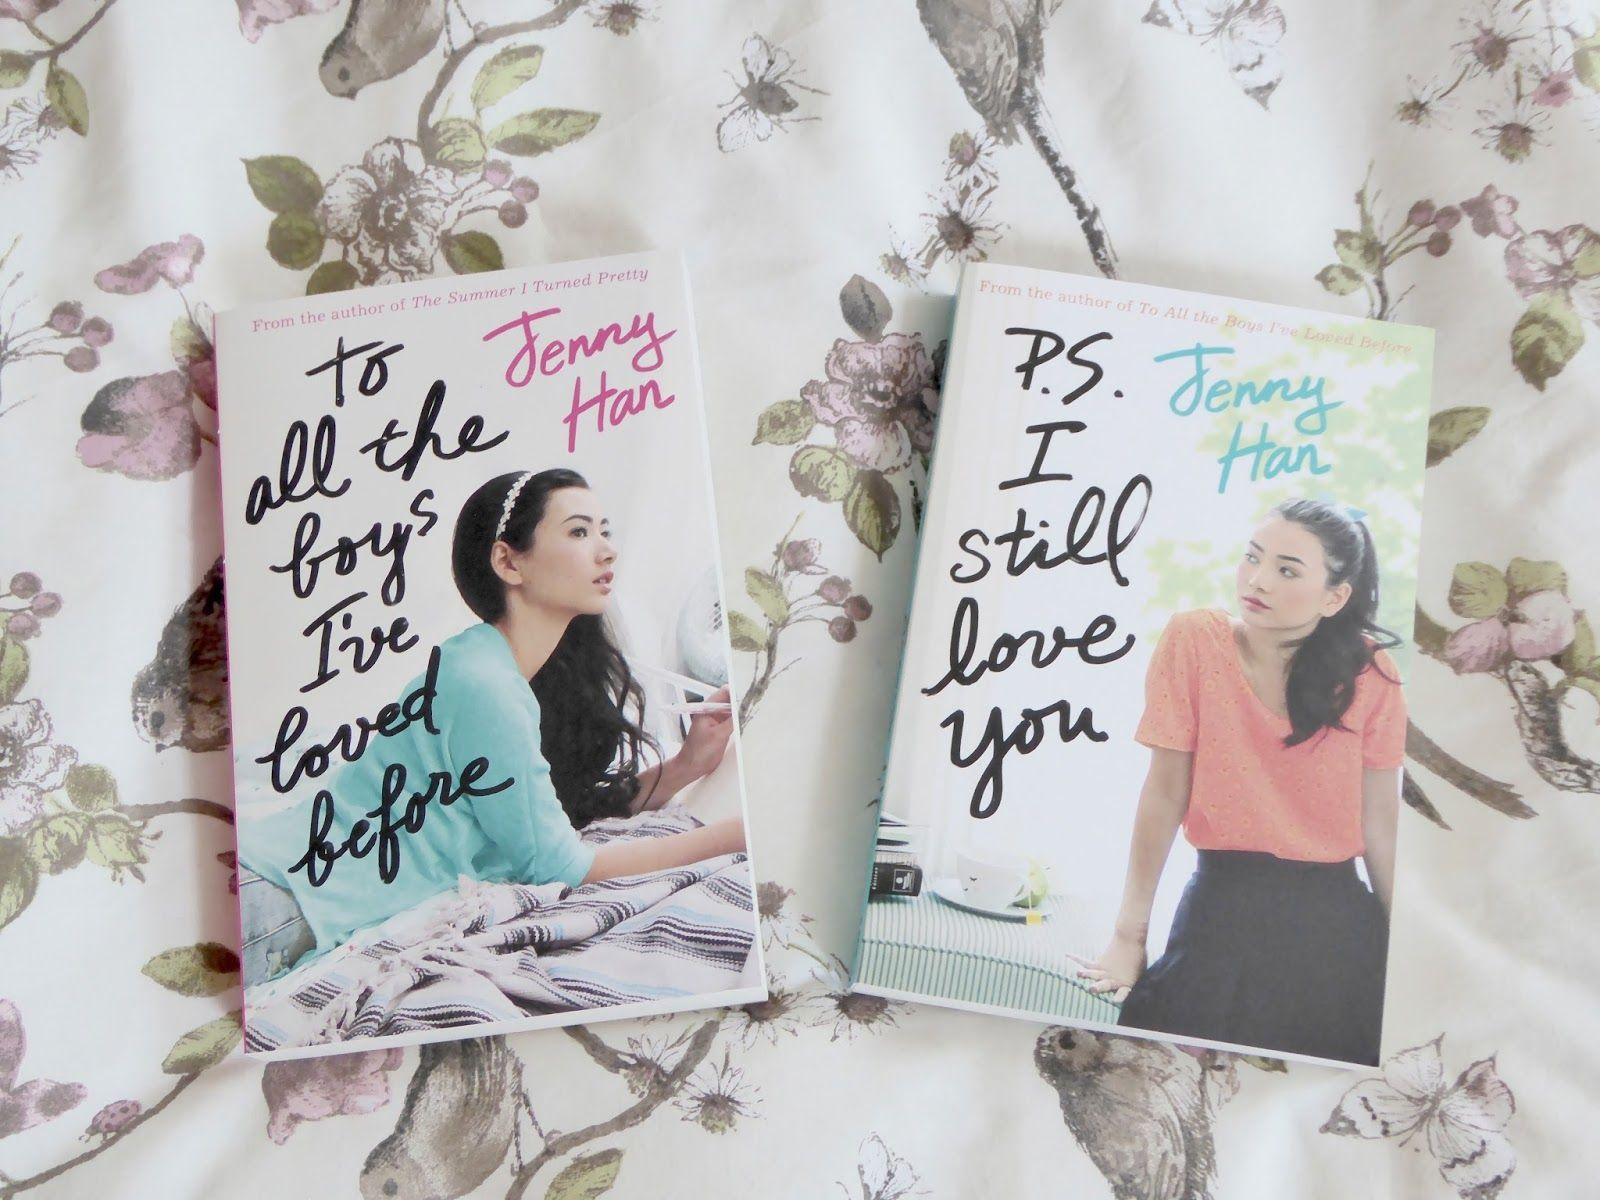 Book Review: To All The Boys I've Loved Before and PS. I Still